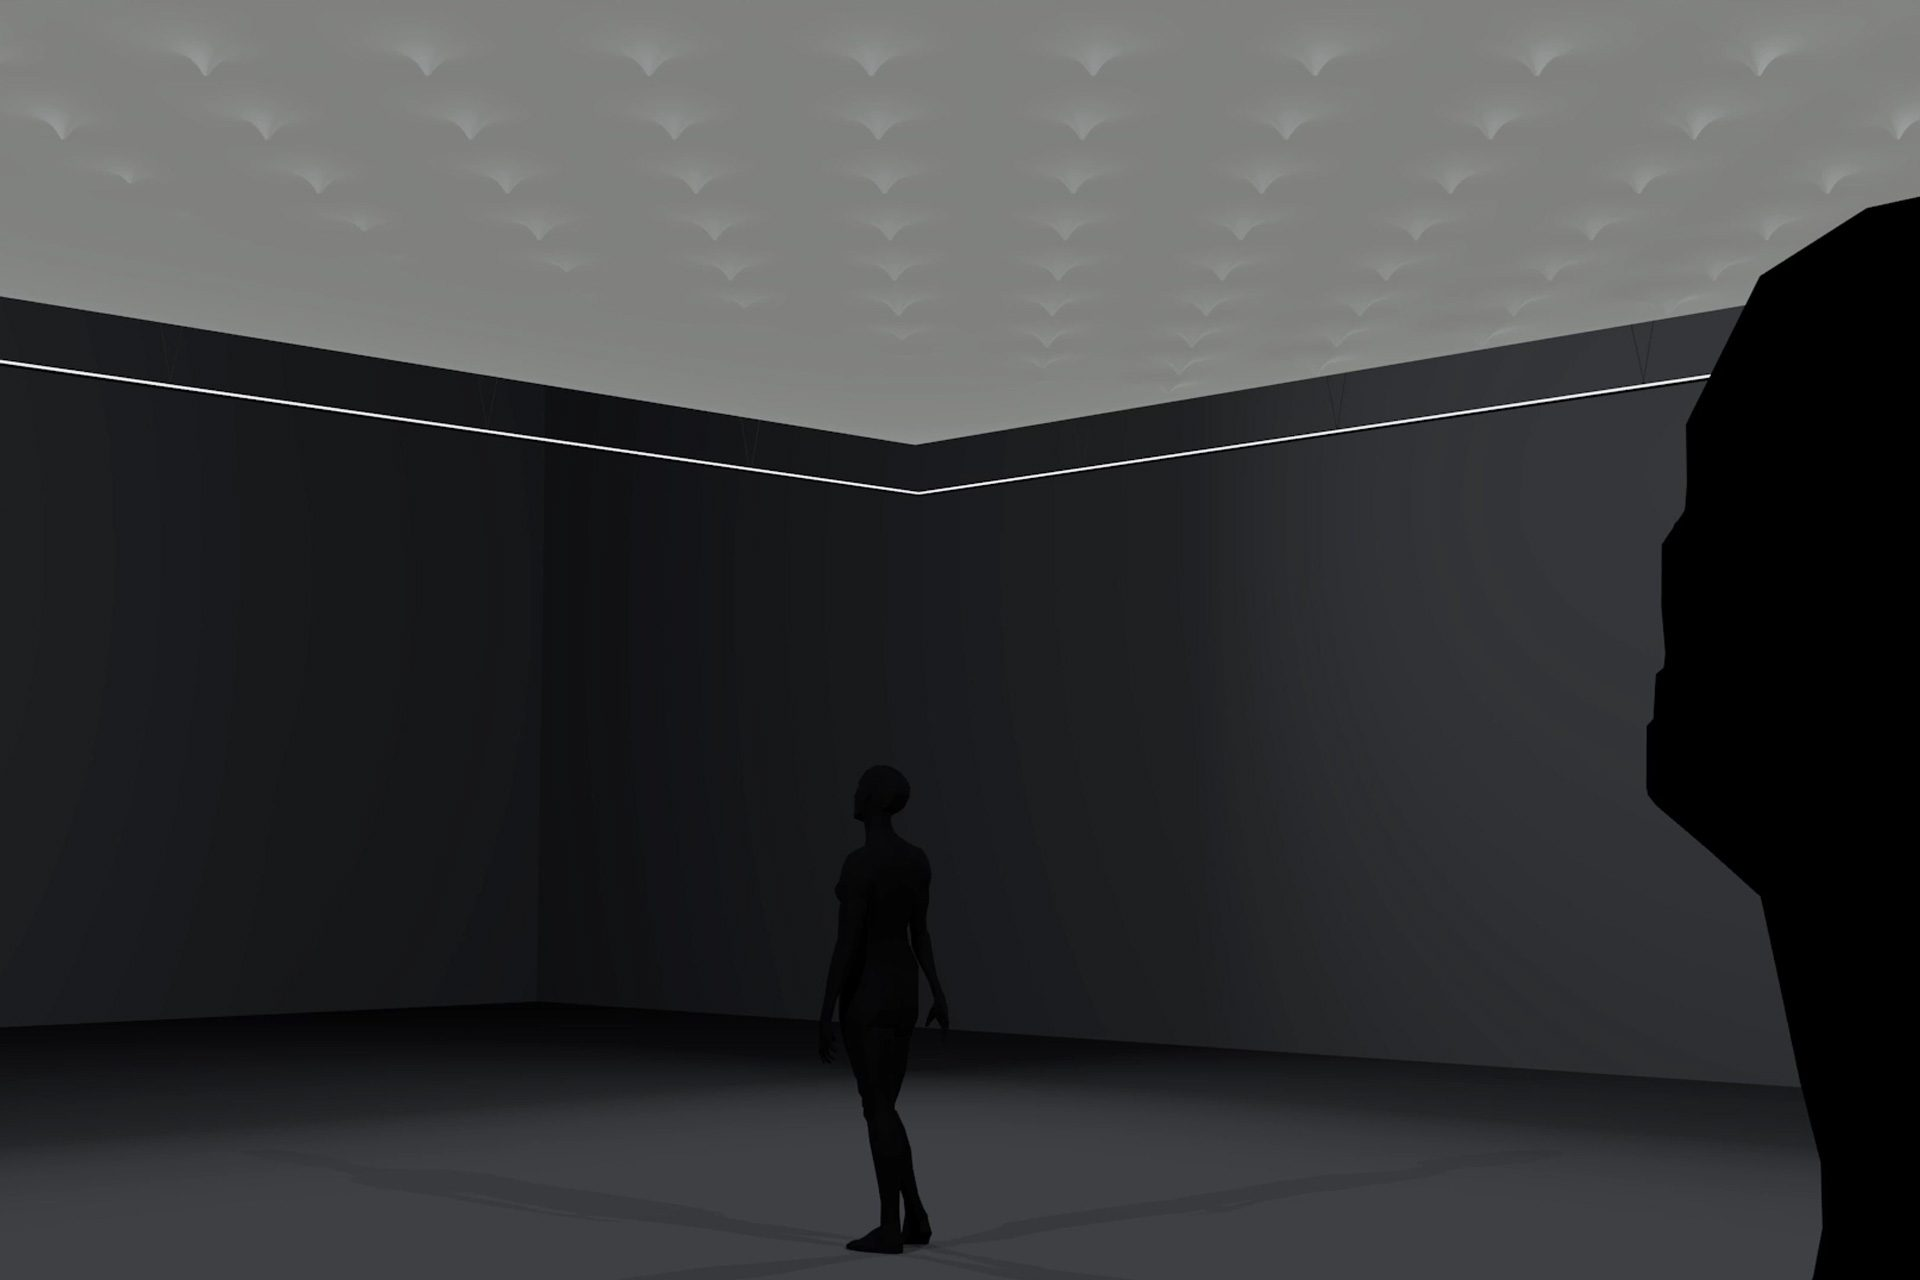 In-situ: 10 x 10 meter kinetic ceiling with 144 actuators and plain lighting